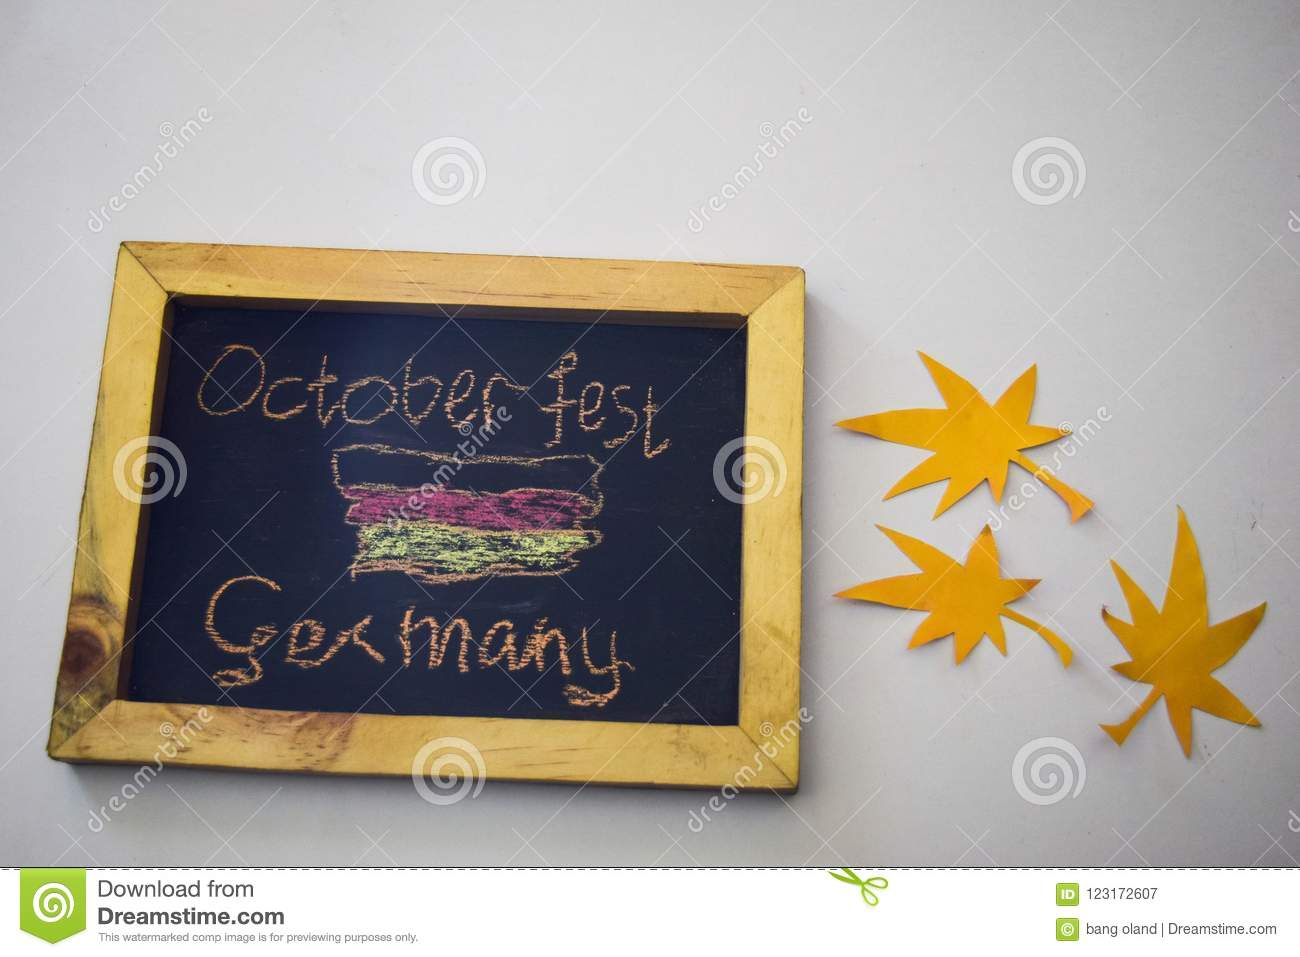 Celebrate october festival - clothes pins on grey/white background and a chalkboard with the slogan `October Fest Germany`